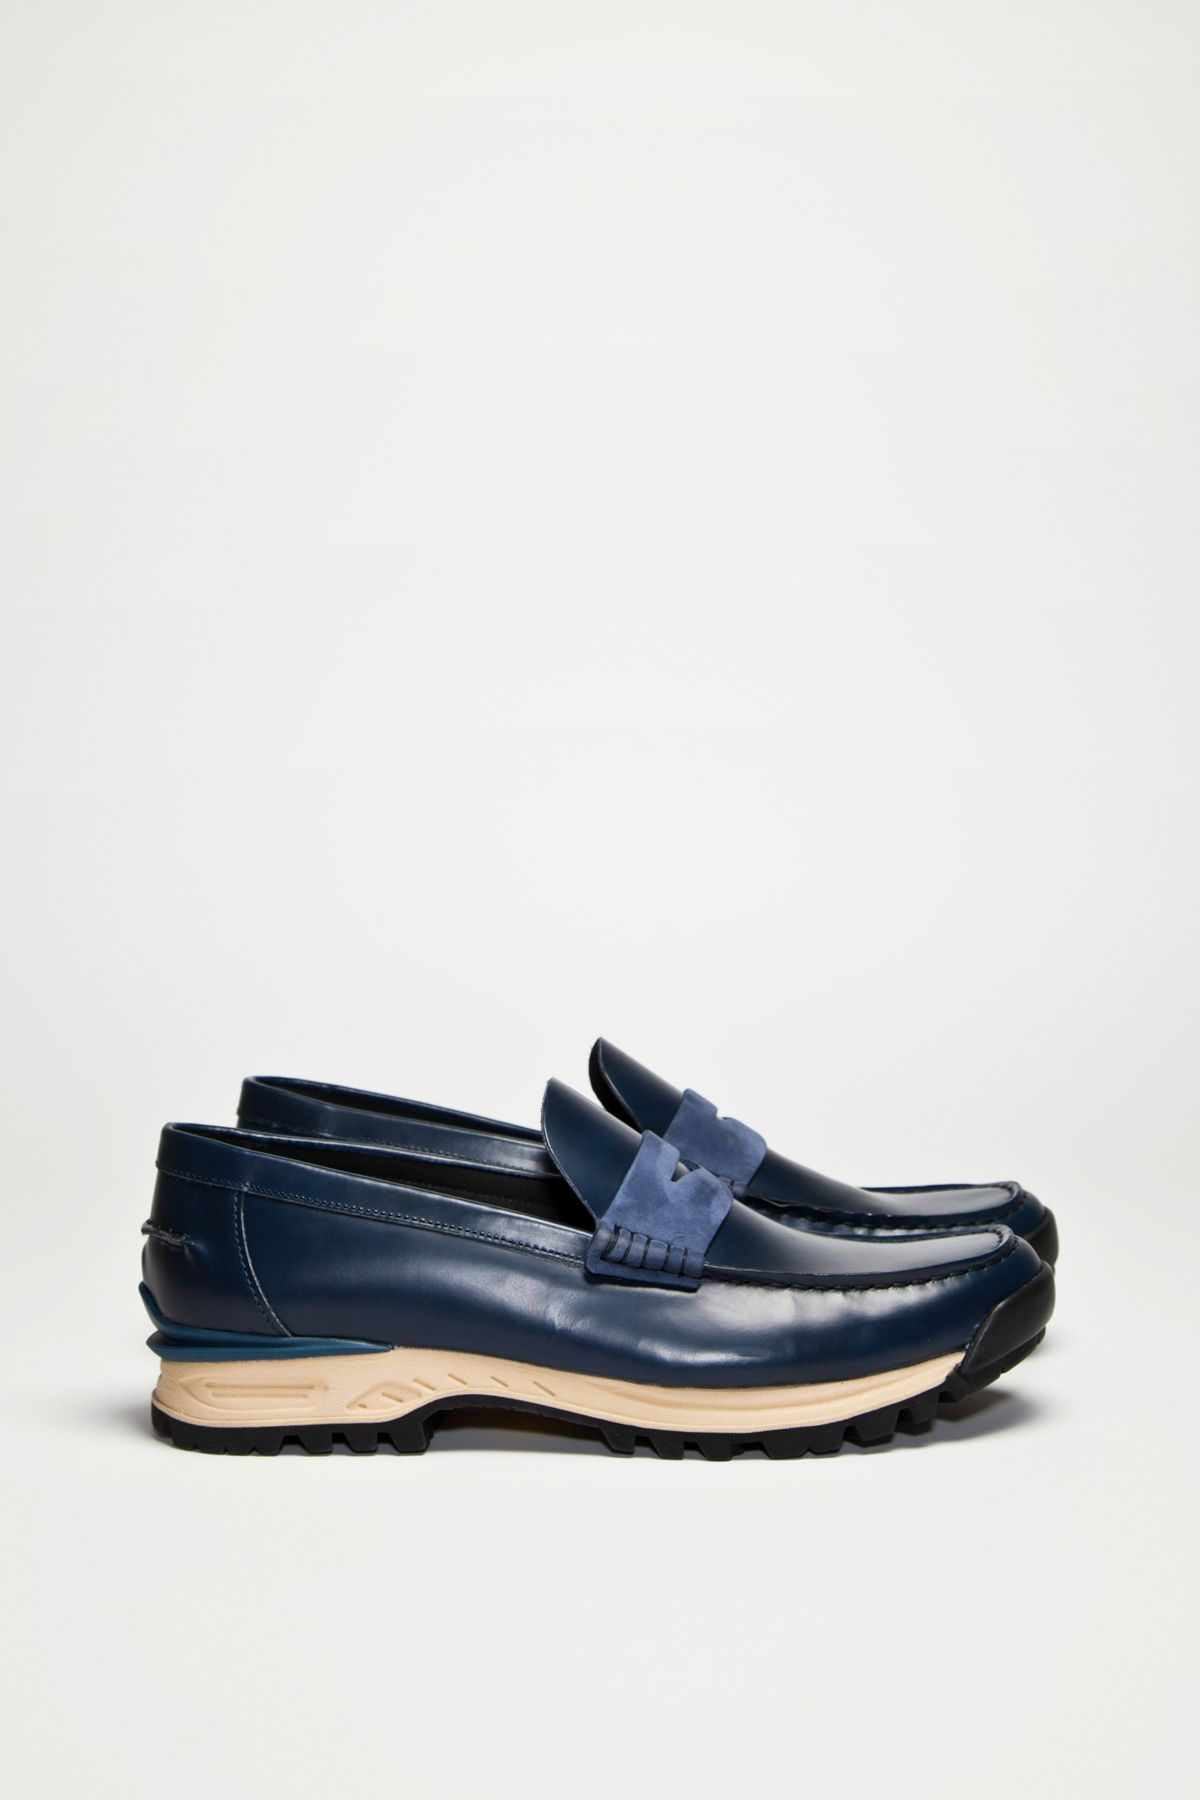 Innovative loafers from Acne. Penny loafer design in smooth leather, all  made in Italy. Chunky Vibram soles gives this classic shape an updated look. 396c94312e